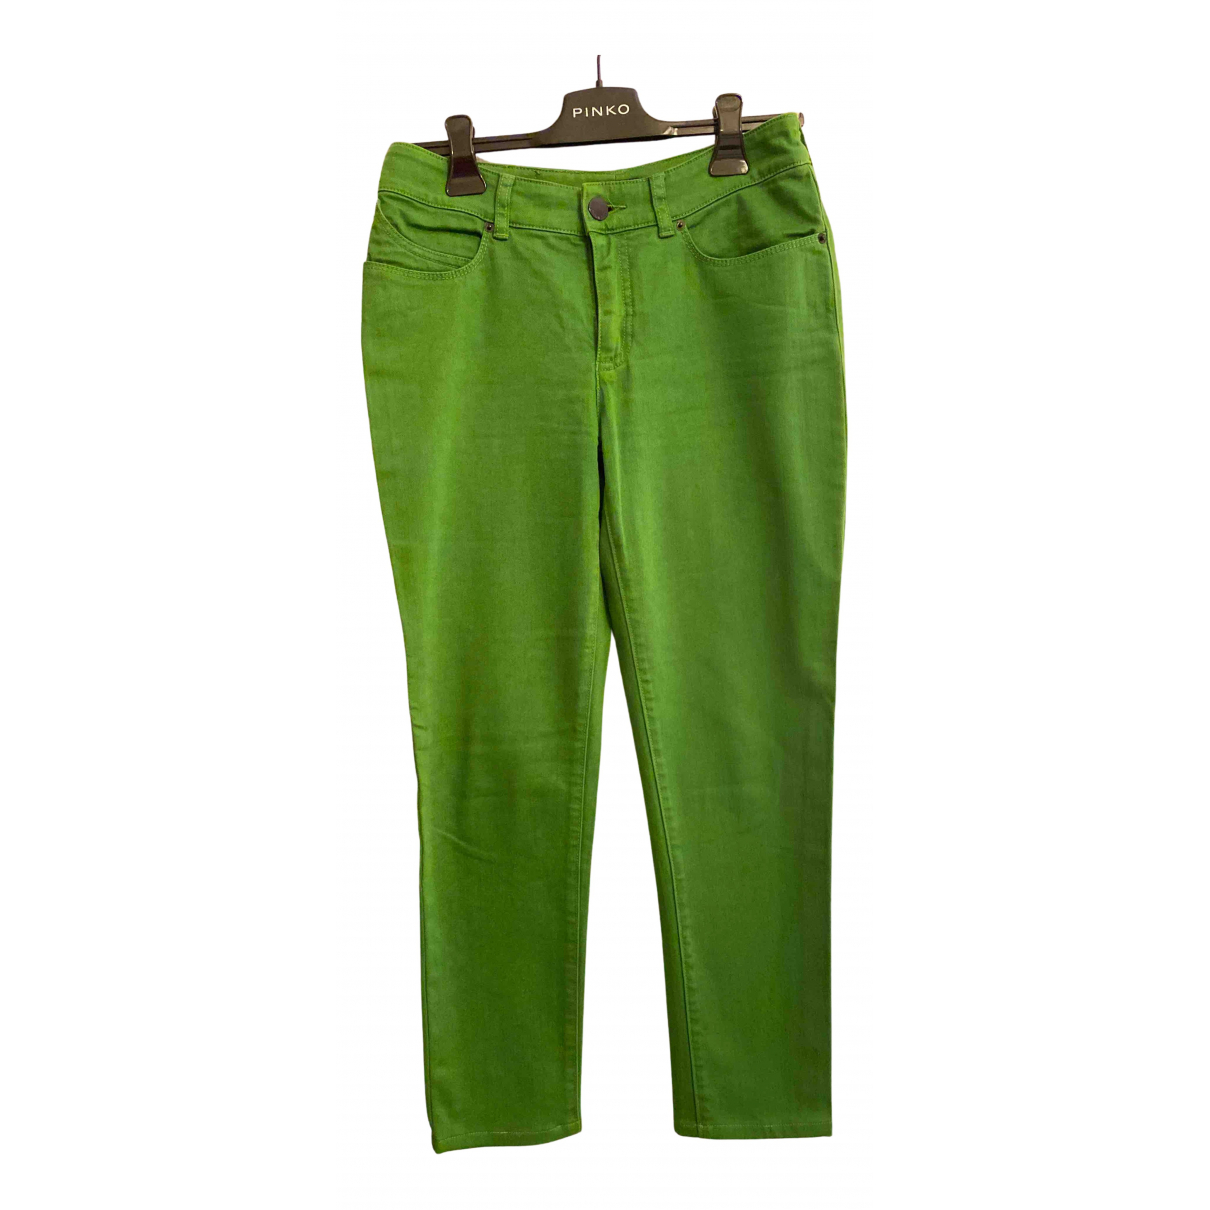 Armani Jeans N Green Cotton Trousers for Women 38 IT